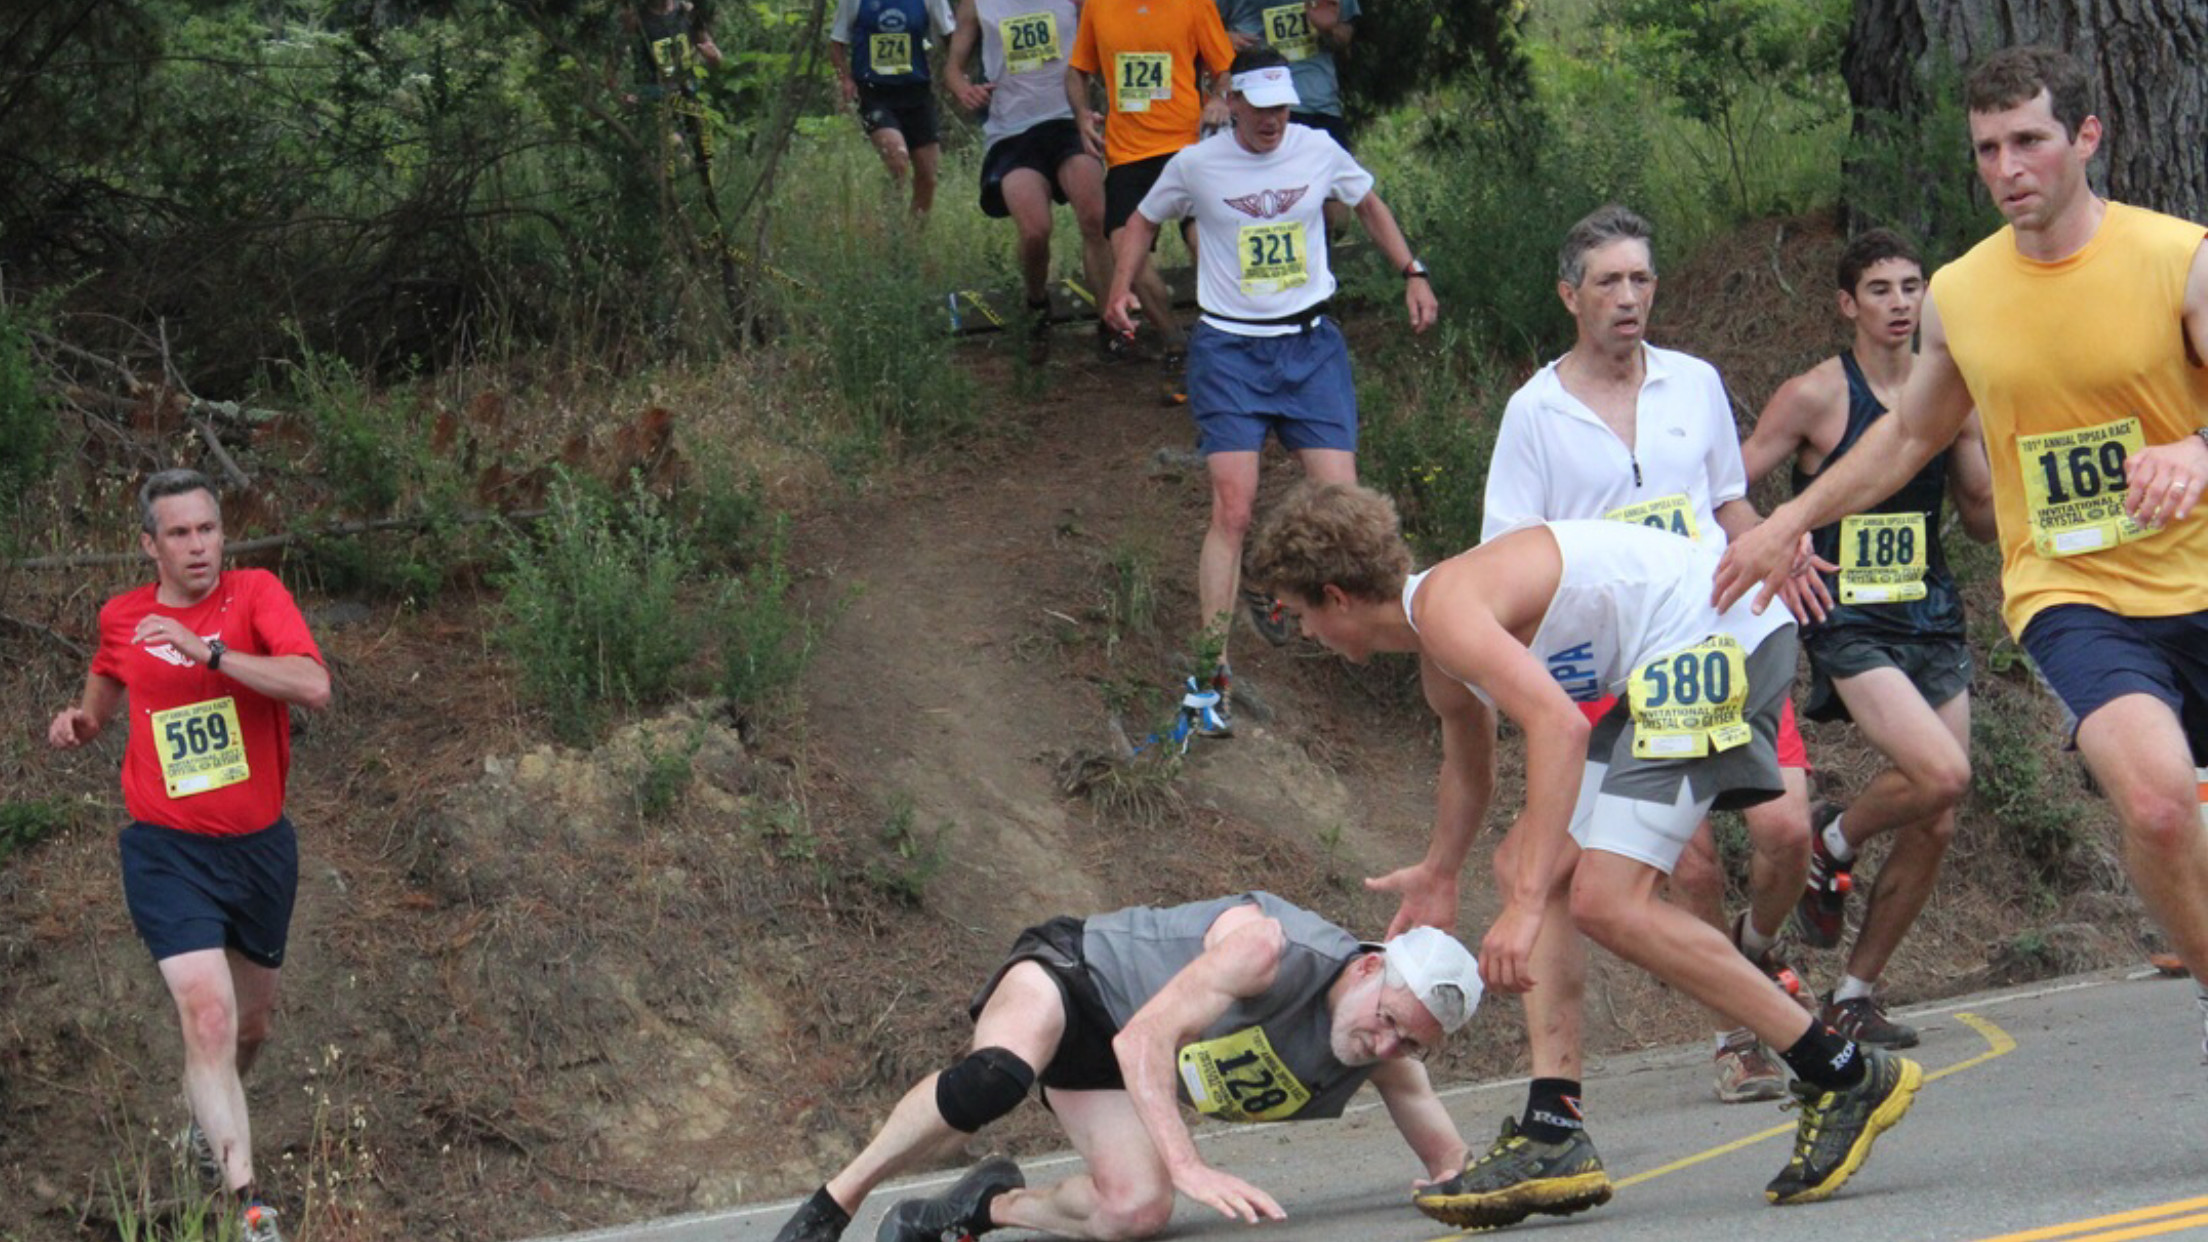 The Dipsea is the oldest Trail Race in America